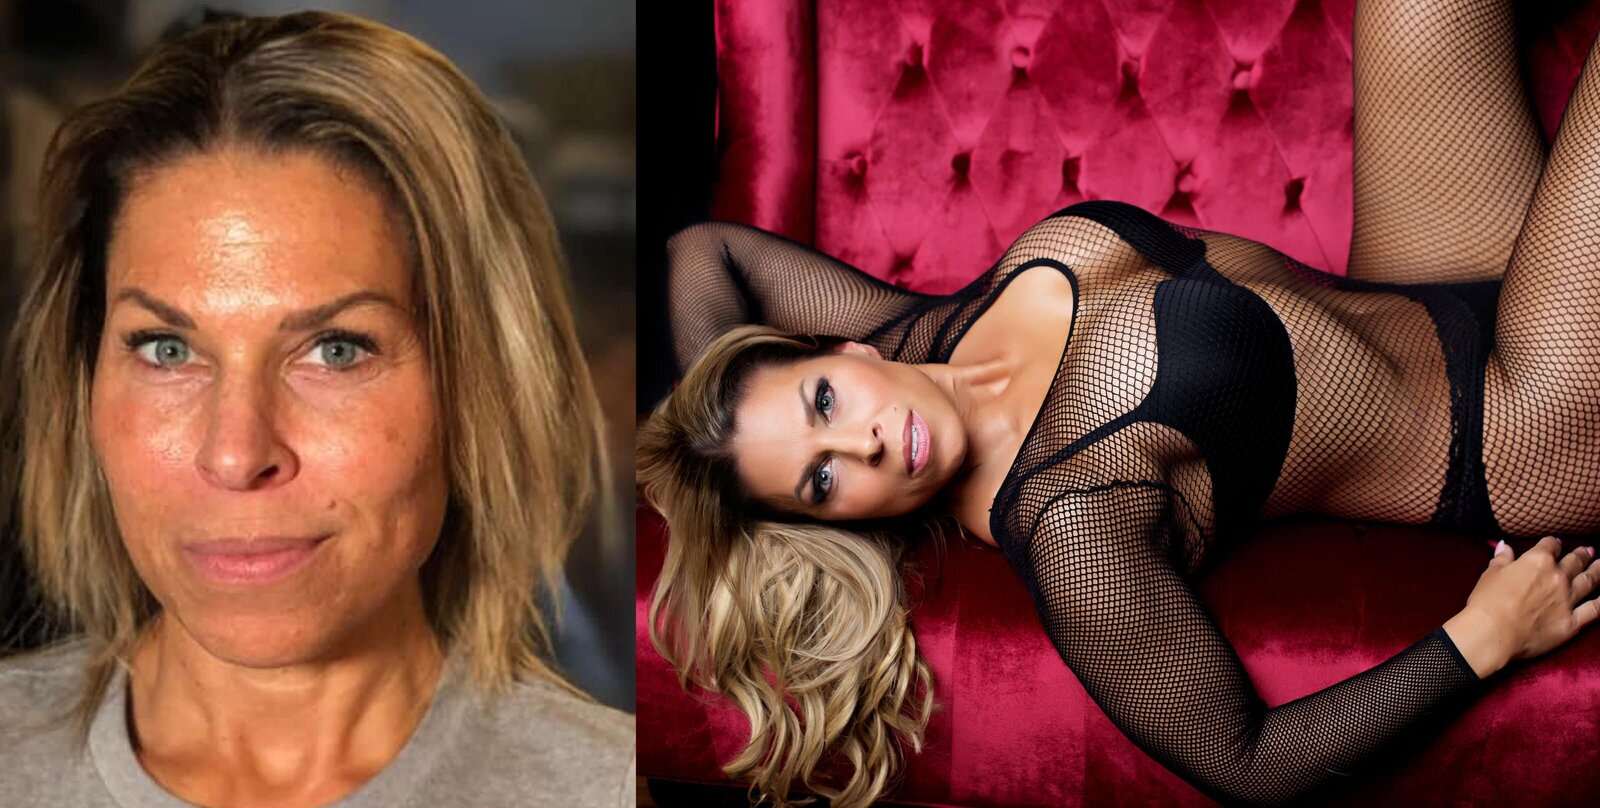 Blonde woman  in a before and after hair & makeup photo laying on a red couch in black lingerie